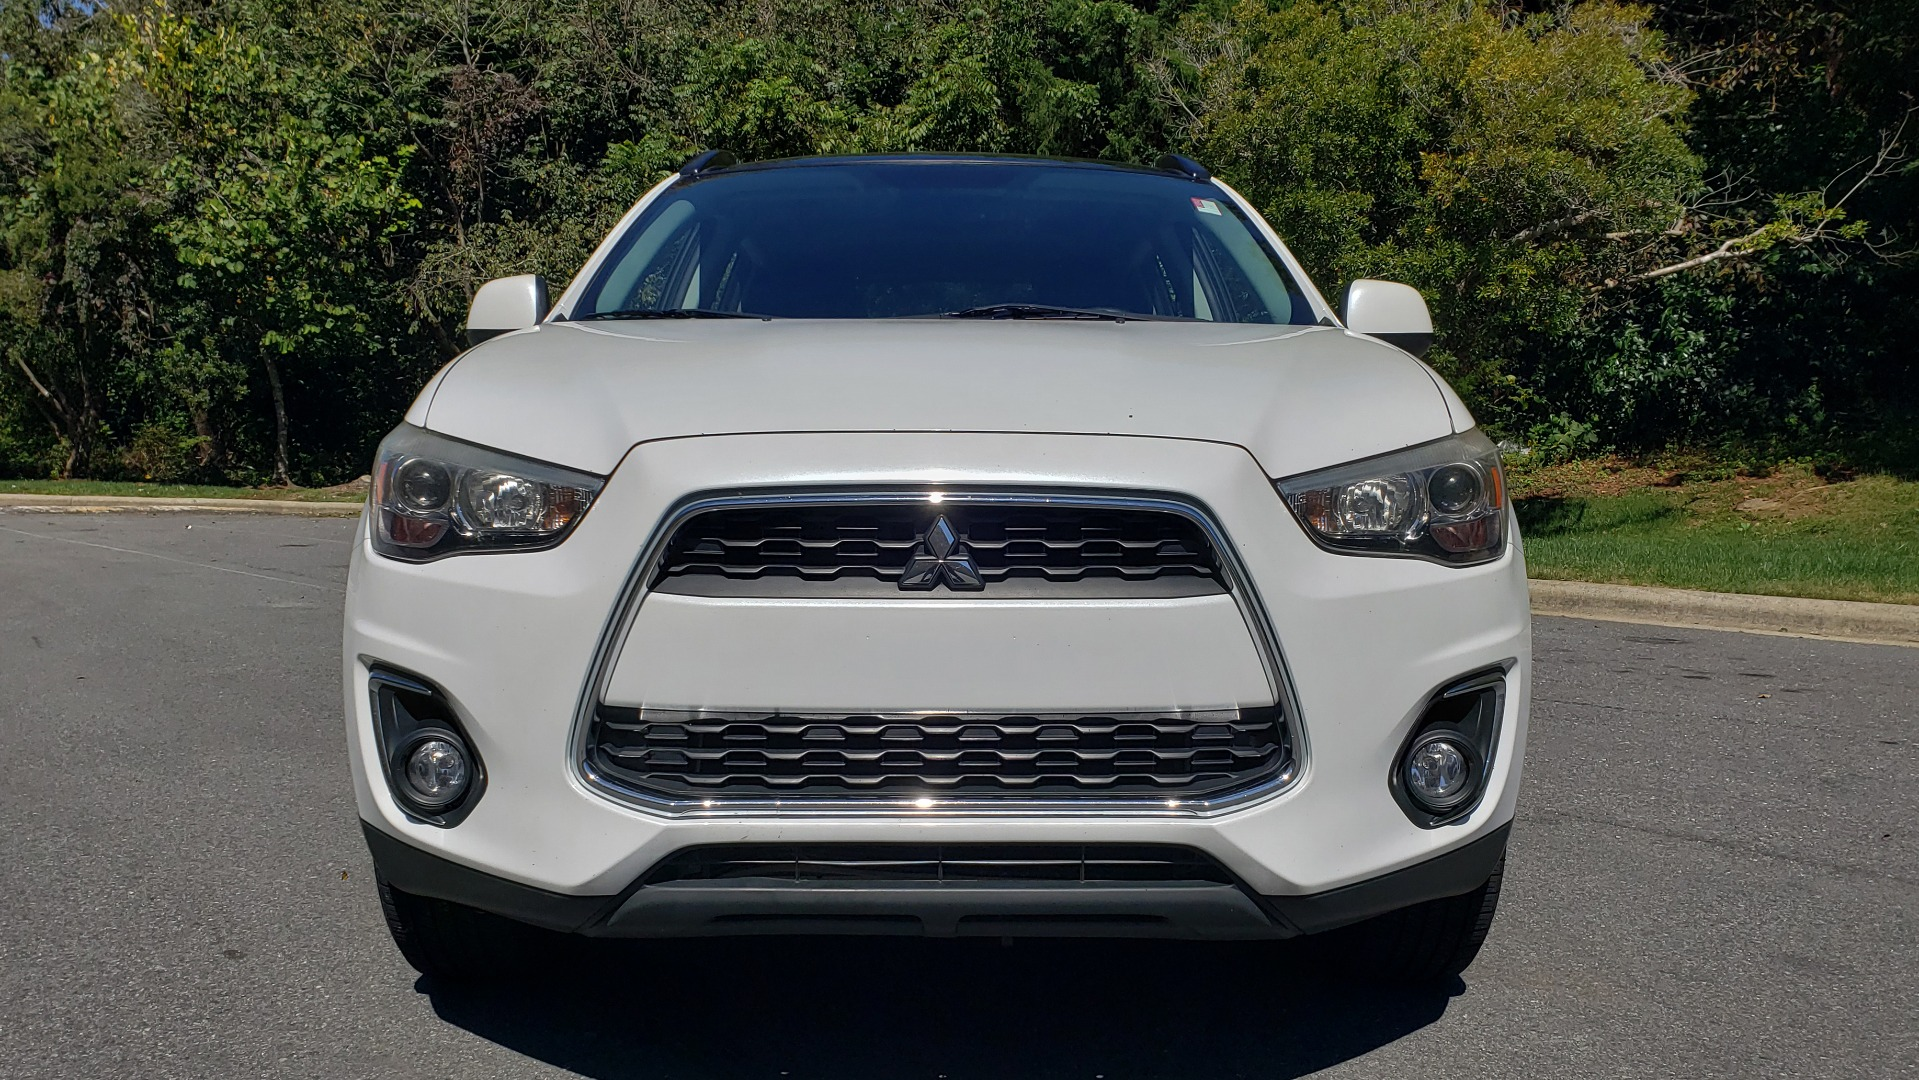 Used 2013 Mitsubishi OUTLANDER SPORT SE / 2WD / 4-DR SUV / CVT TRANS / PREMIUM SOUND / REARVIEW for sale Sold at Formula Imports in Charlotte NC 28227 21